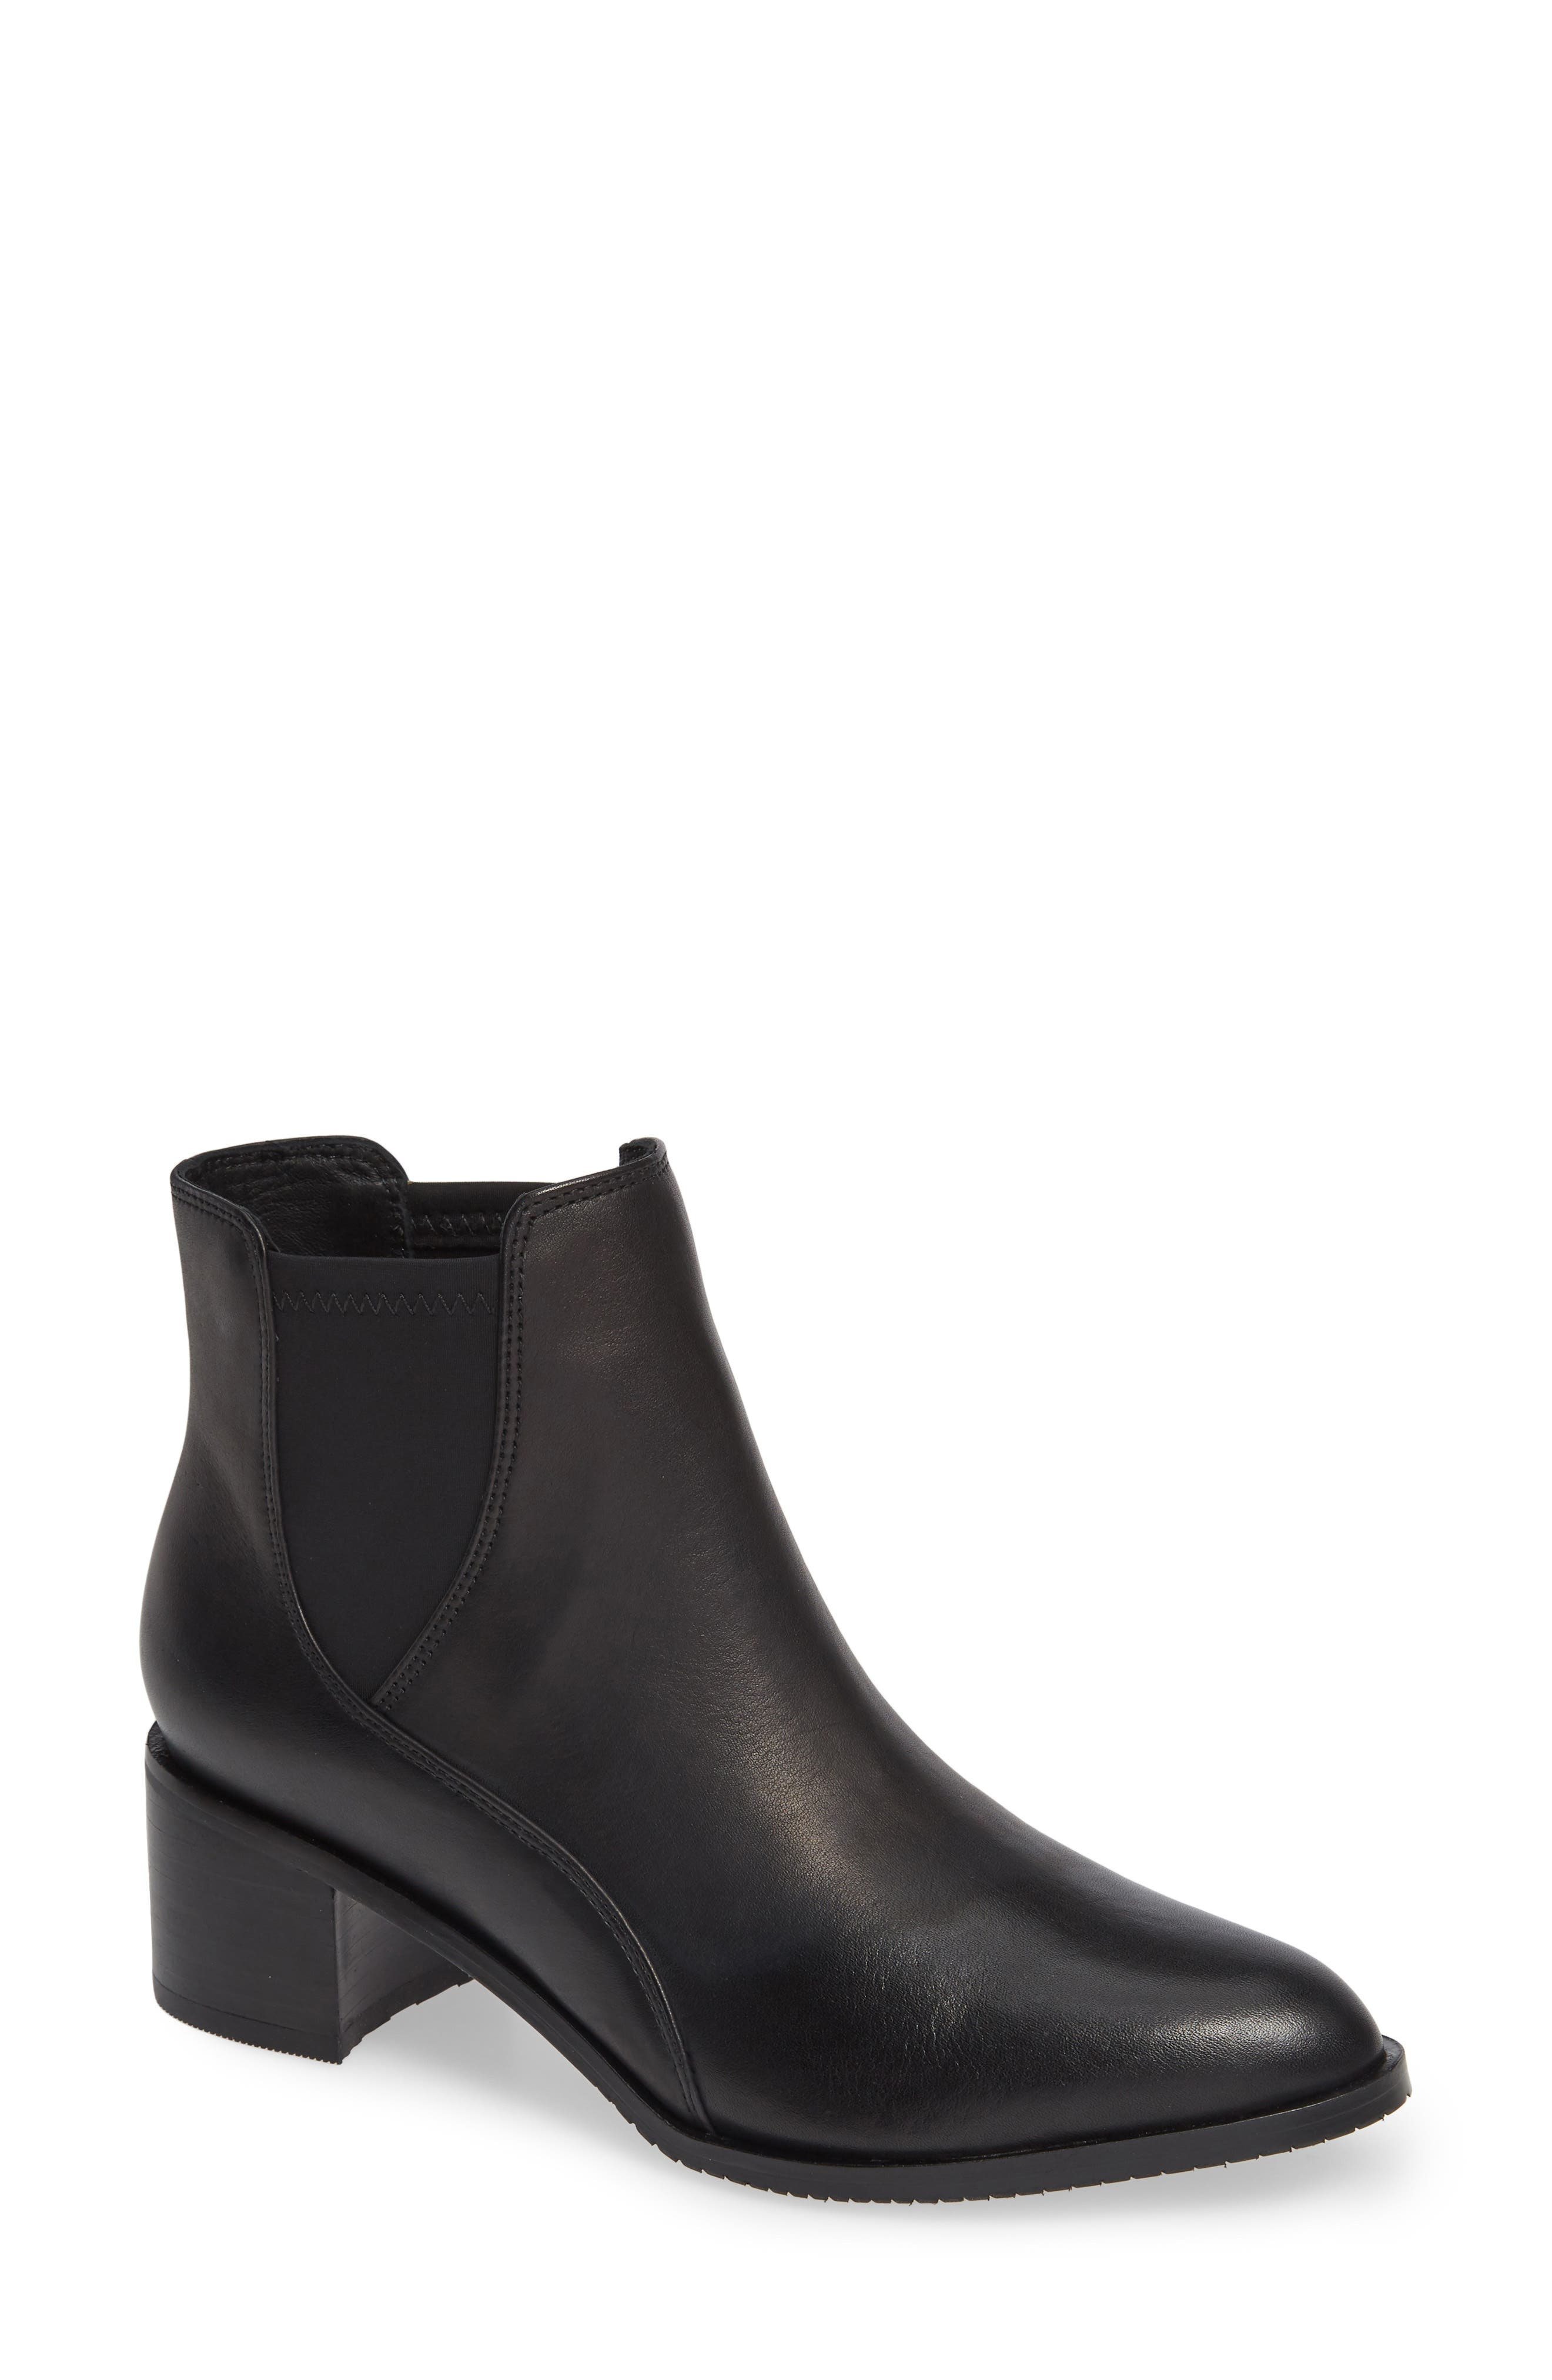 CLARKS<SUP>®</SUP> Poise Lola Bootie, Main, color, BLACK LEATHER